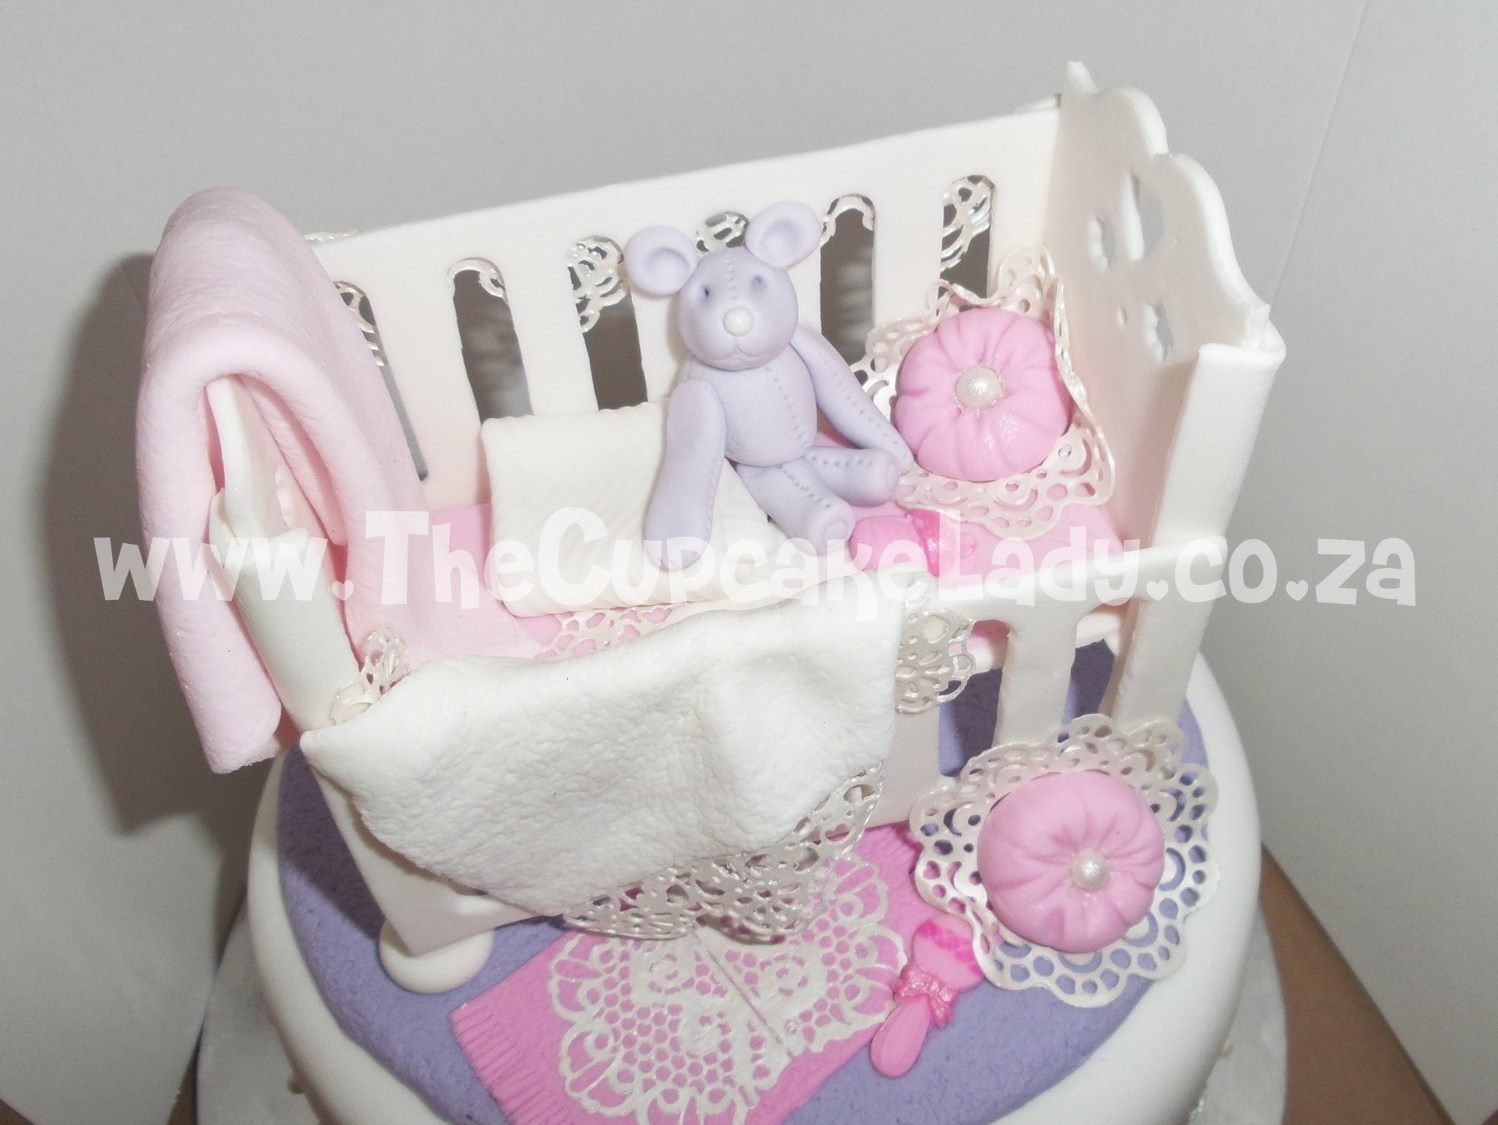 baby shower, nursery-theme, cake, cot and all its extras - the lace, blankets, cushions and all - are hand made of sugar paste and completely edible